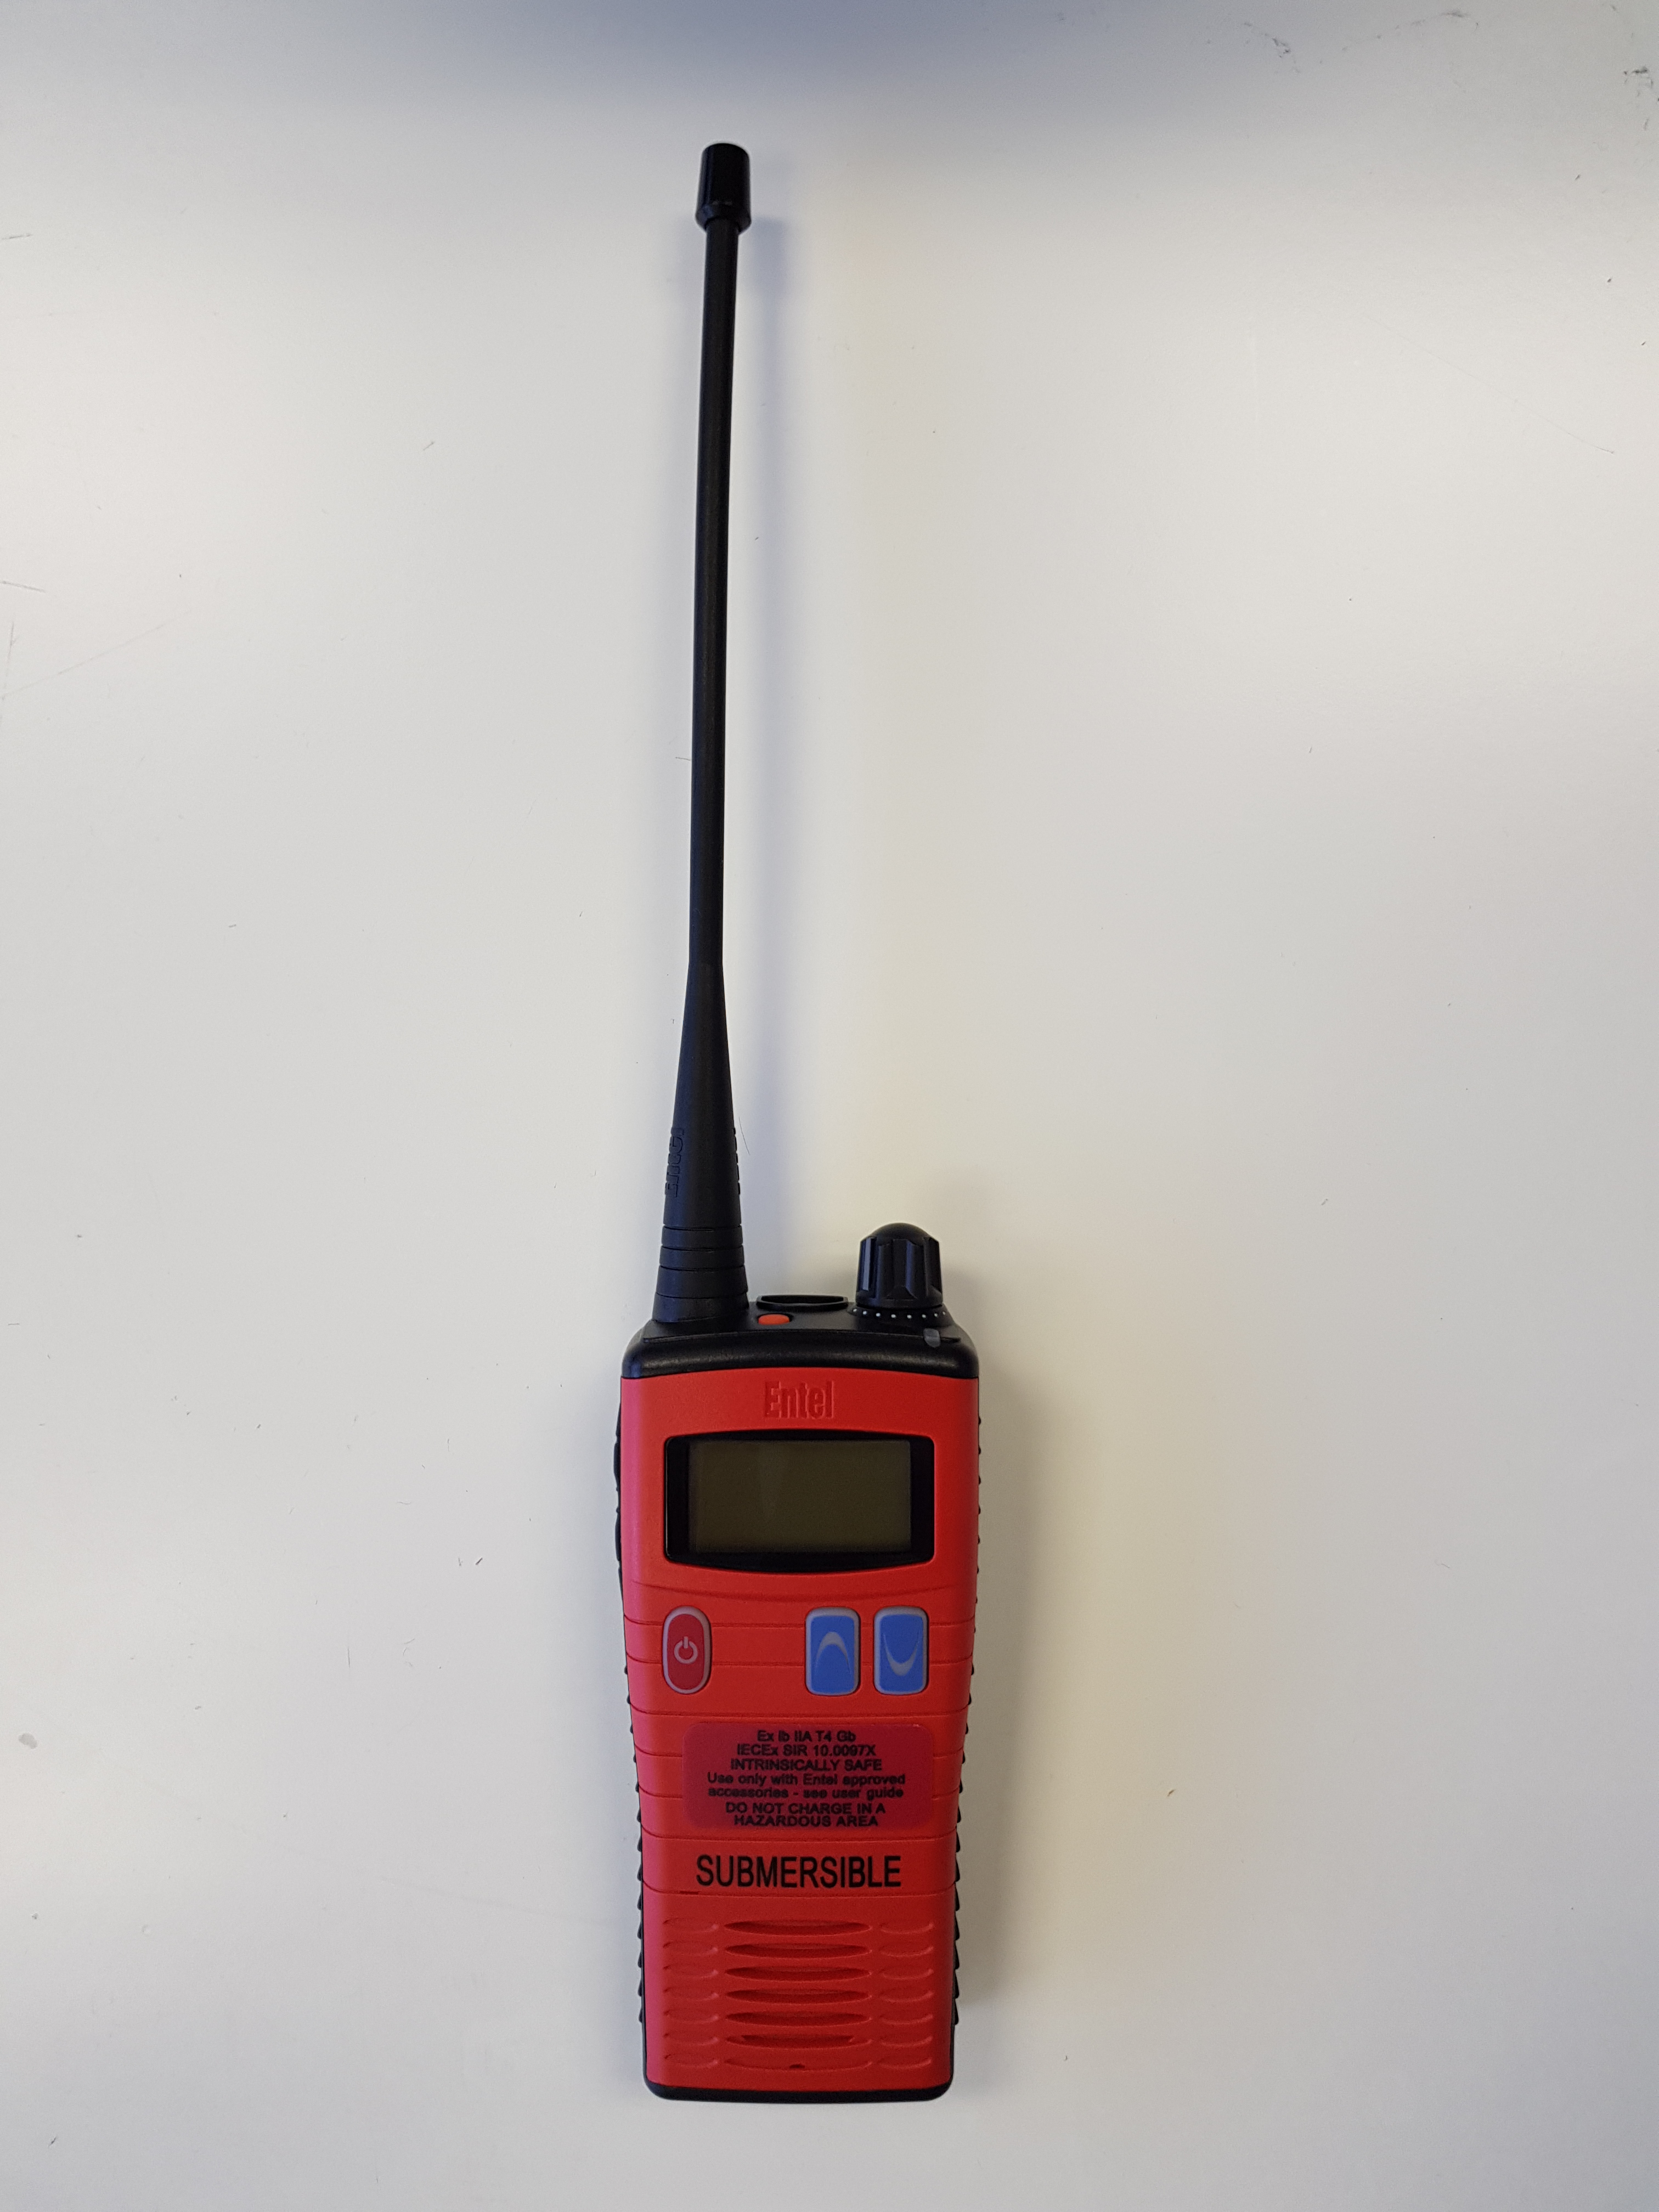 Handheld Radios Products Traconed Lcd Marine Meter Wiring Diagram Entel Ht583 Uhf Iecex Intrinsically Safe Walky Talky